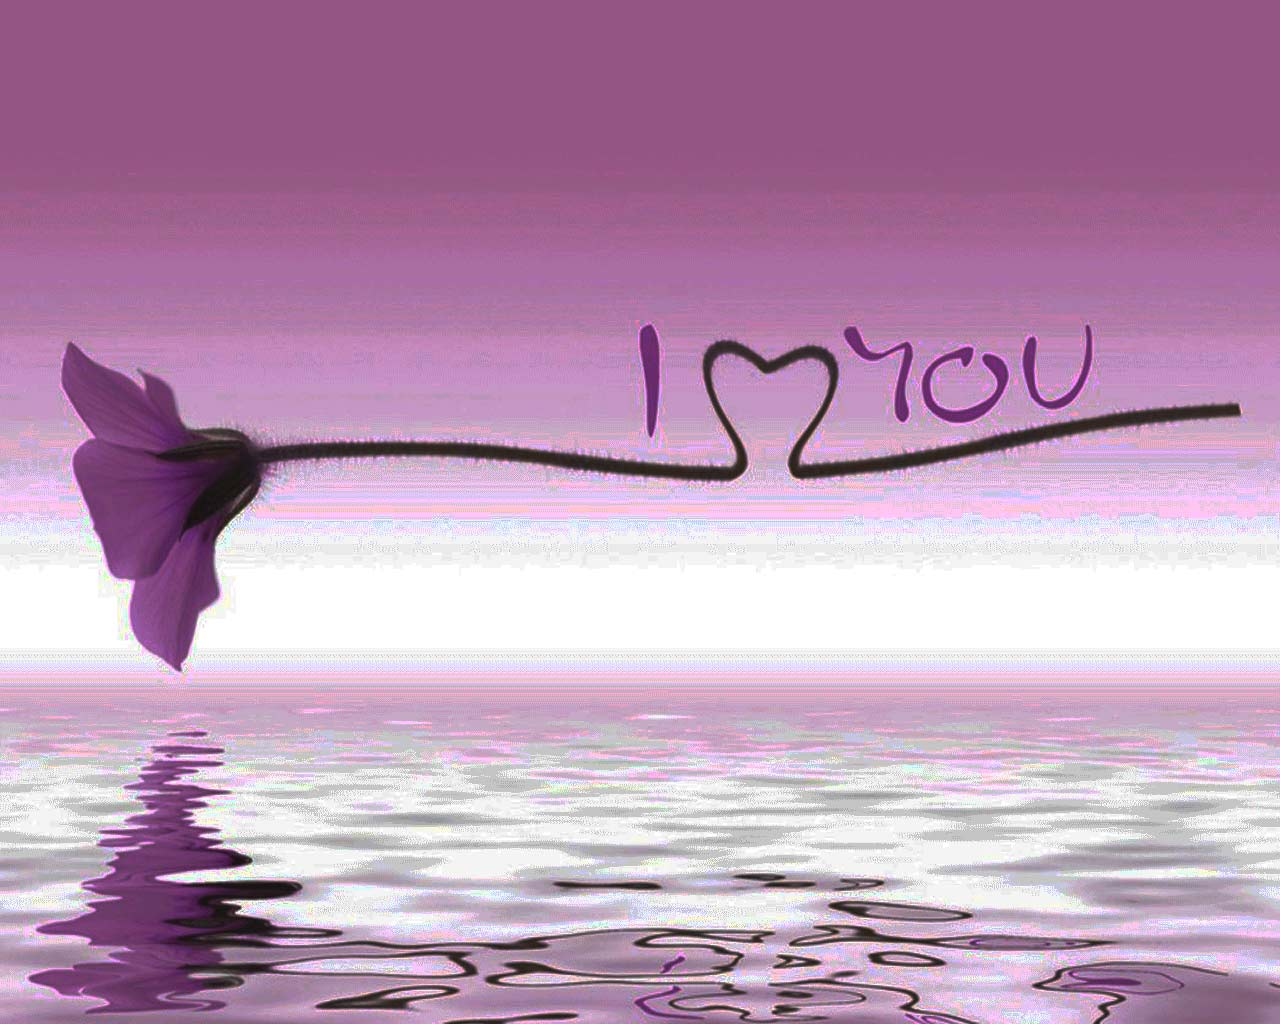 Emotional Love Wallpaper - Love Quotes Images For Her In Hindi - HD Wallpaper